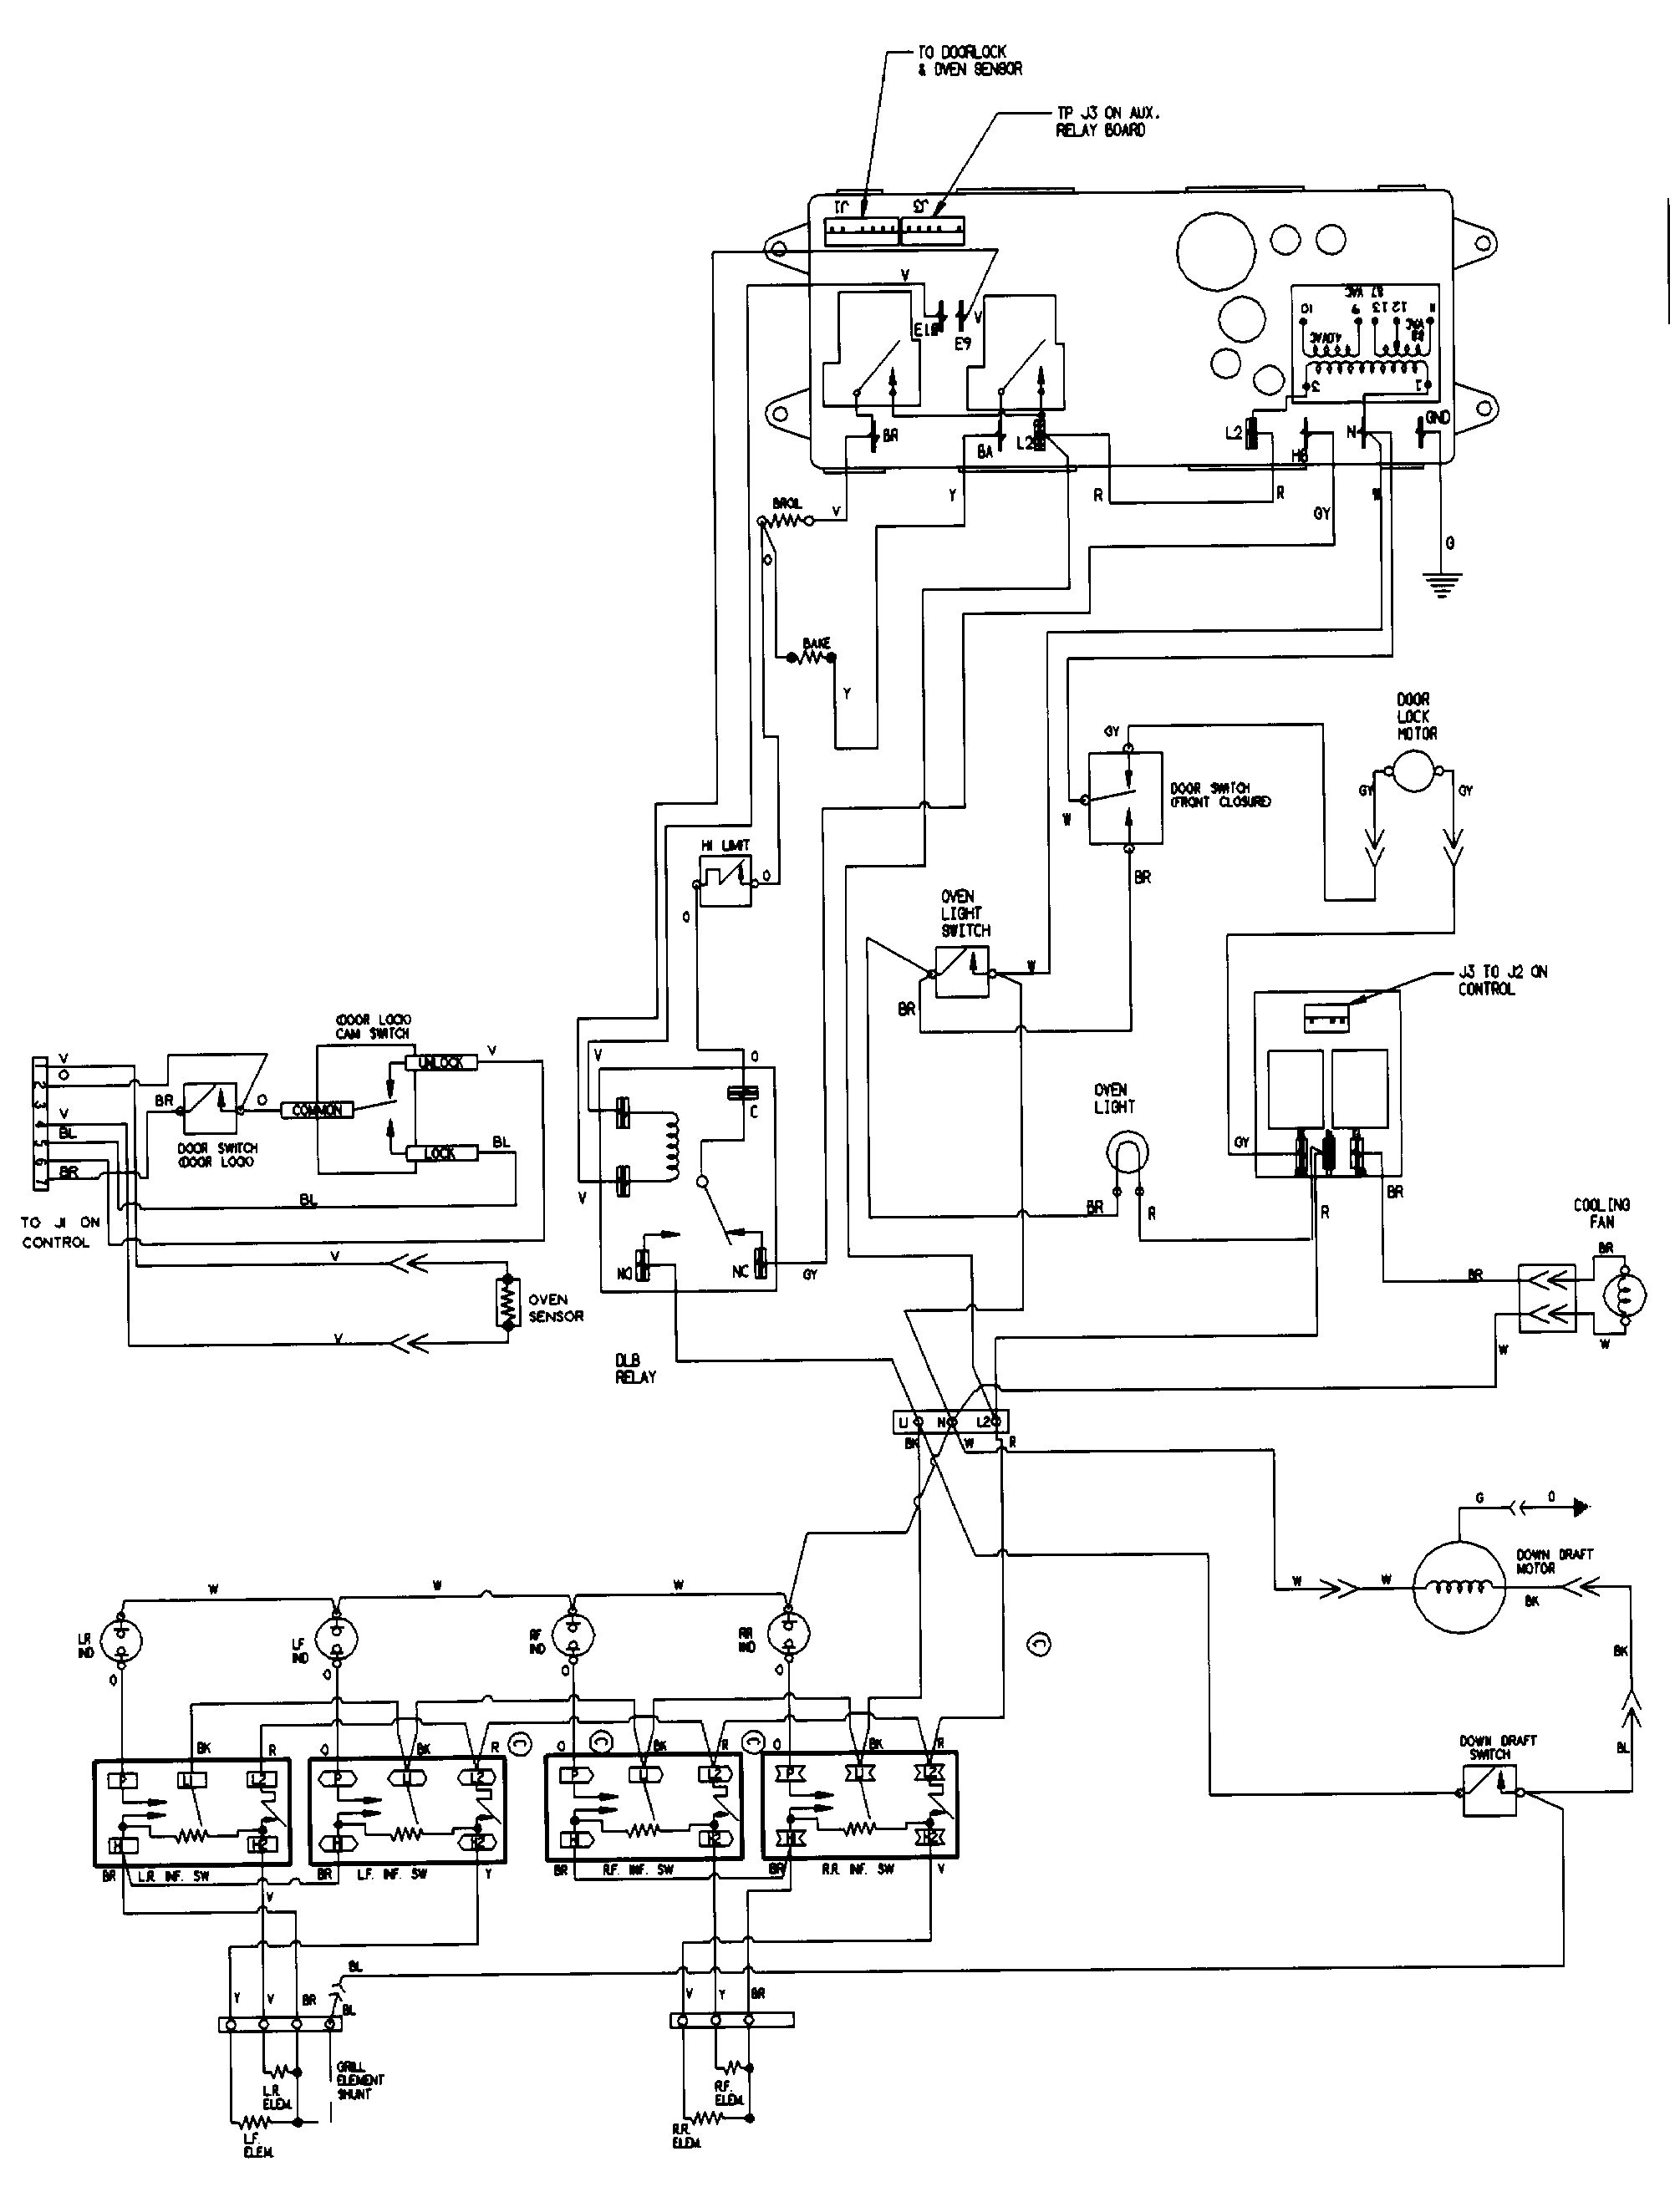 wiring information sve47100bc wc parts?resize\\\=665%2C866\\\&ssl\\\=1 diagrams 788942 imperial fryer wiring diagram parts town imperial ifs-40 wiring diagram at n-0.co